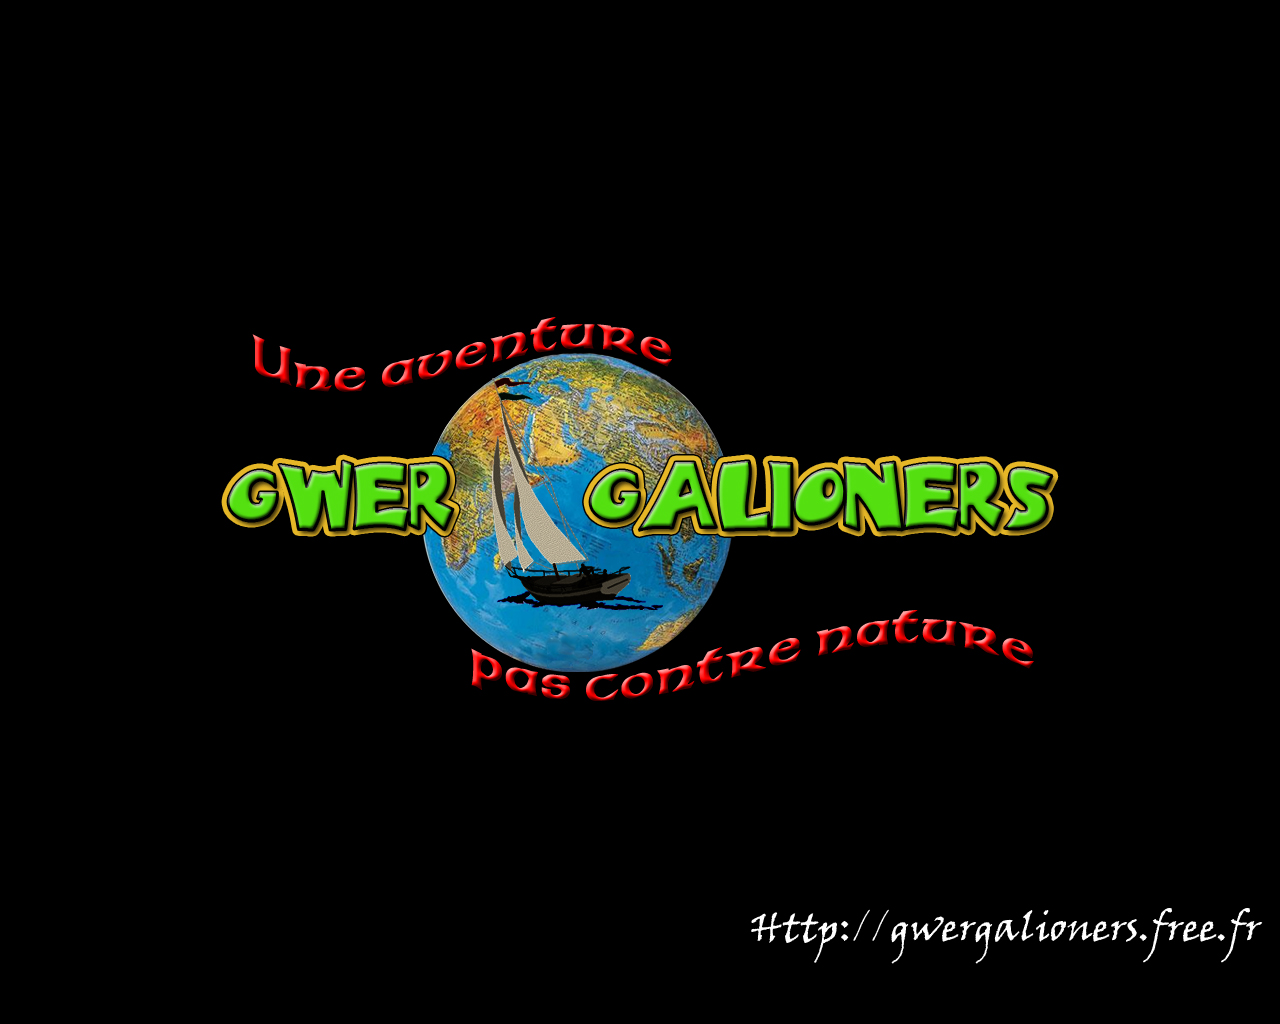 Association - Gwer Galioners